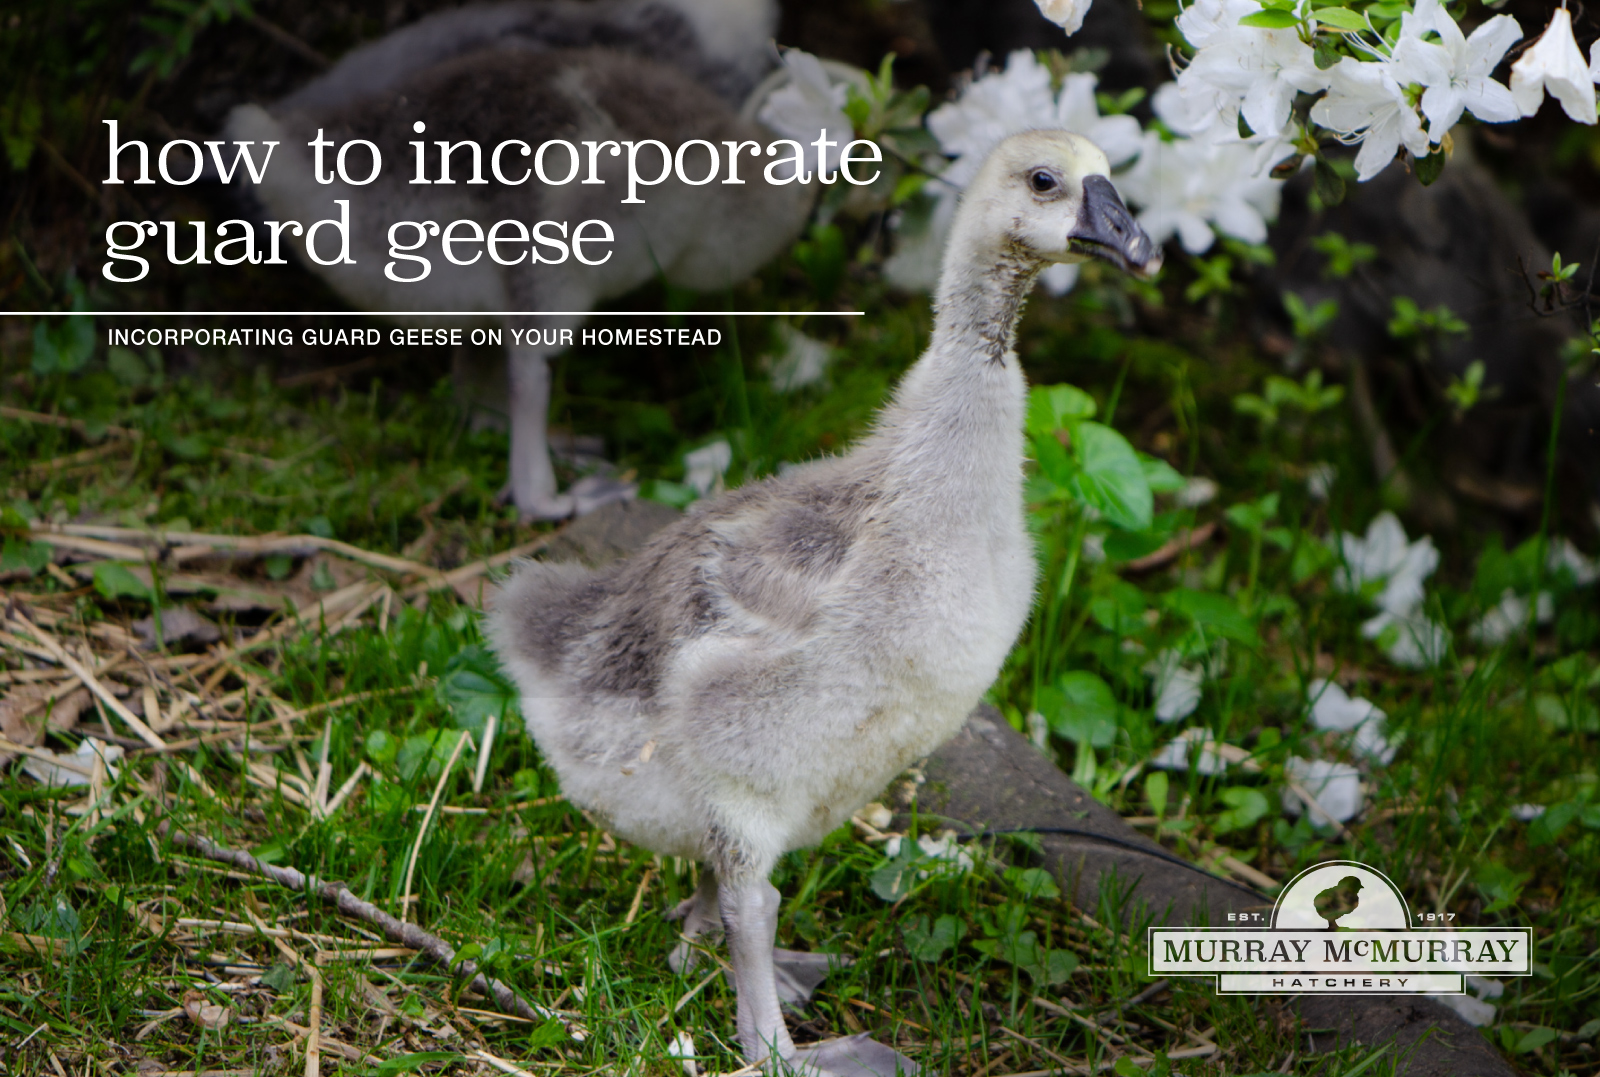 McMurray Hatchery Homesteading Blog | How to Incorporate Guard Geese